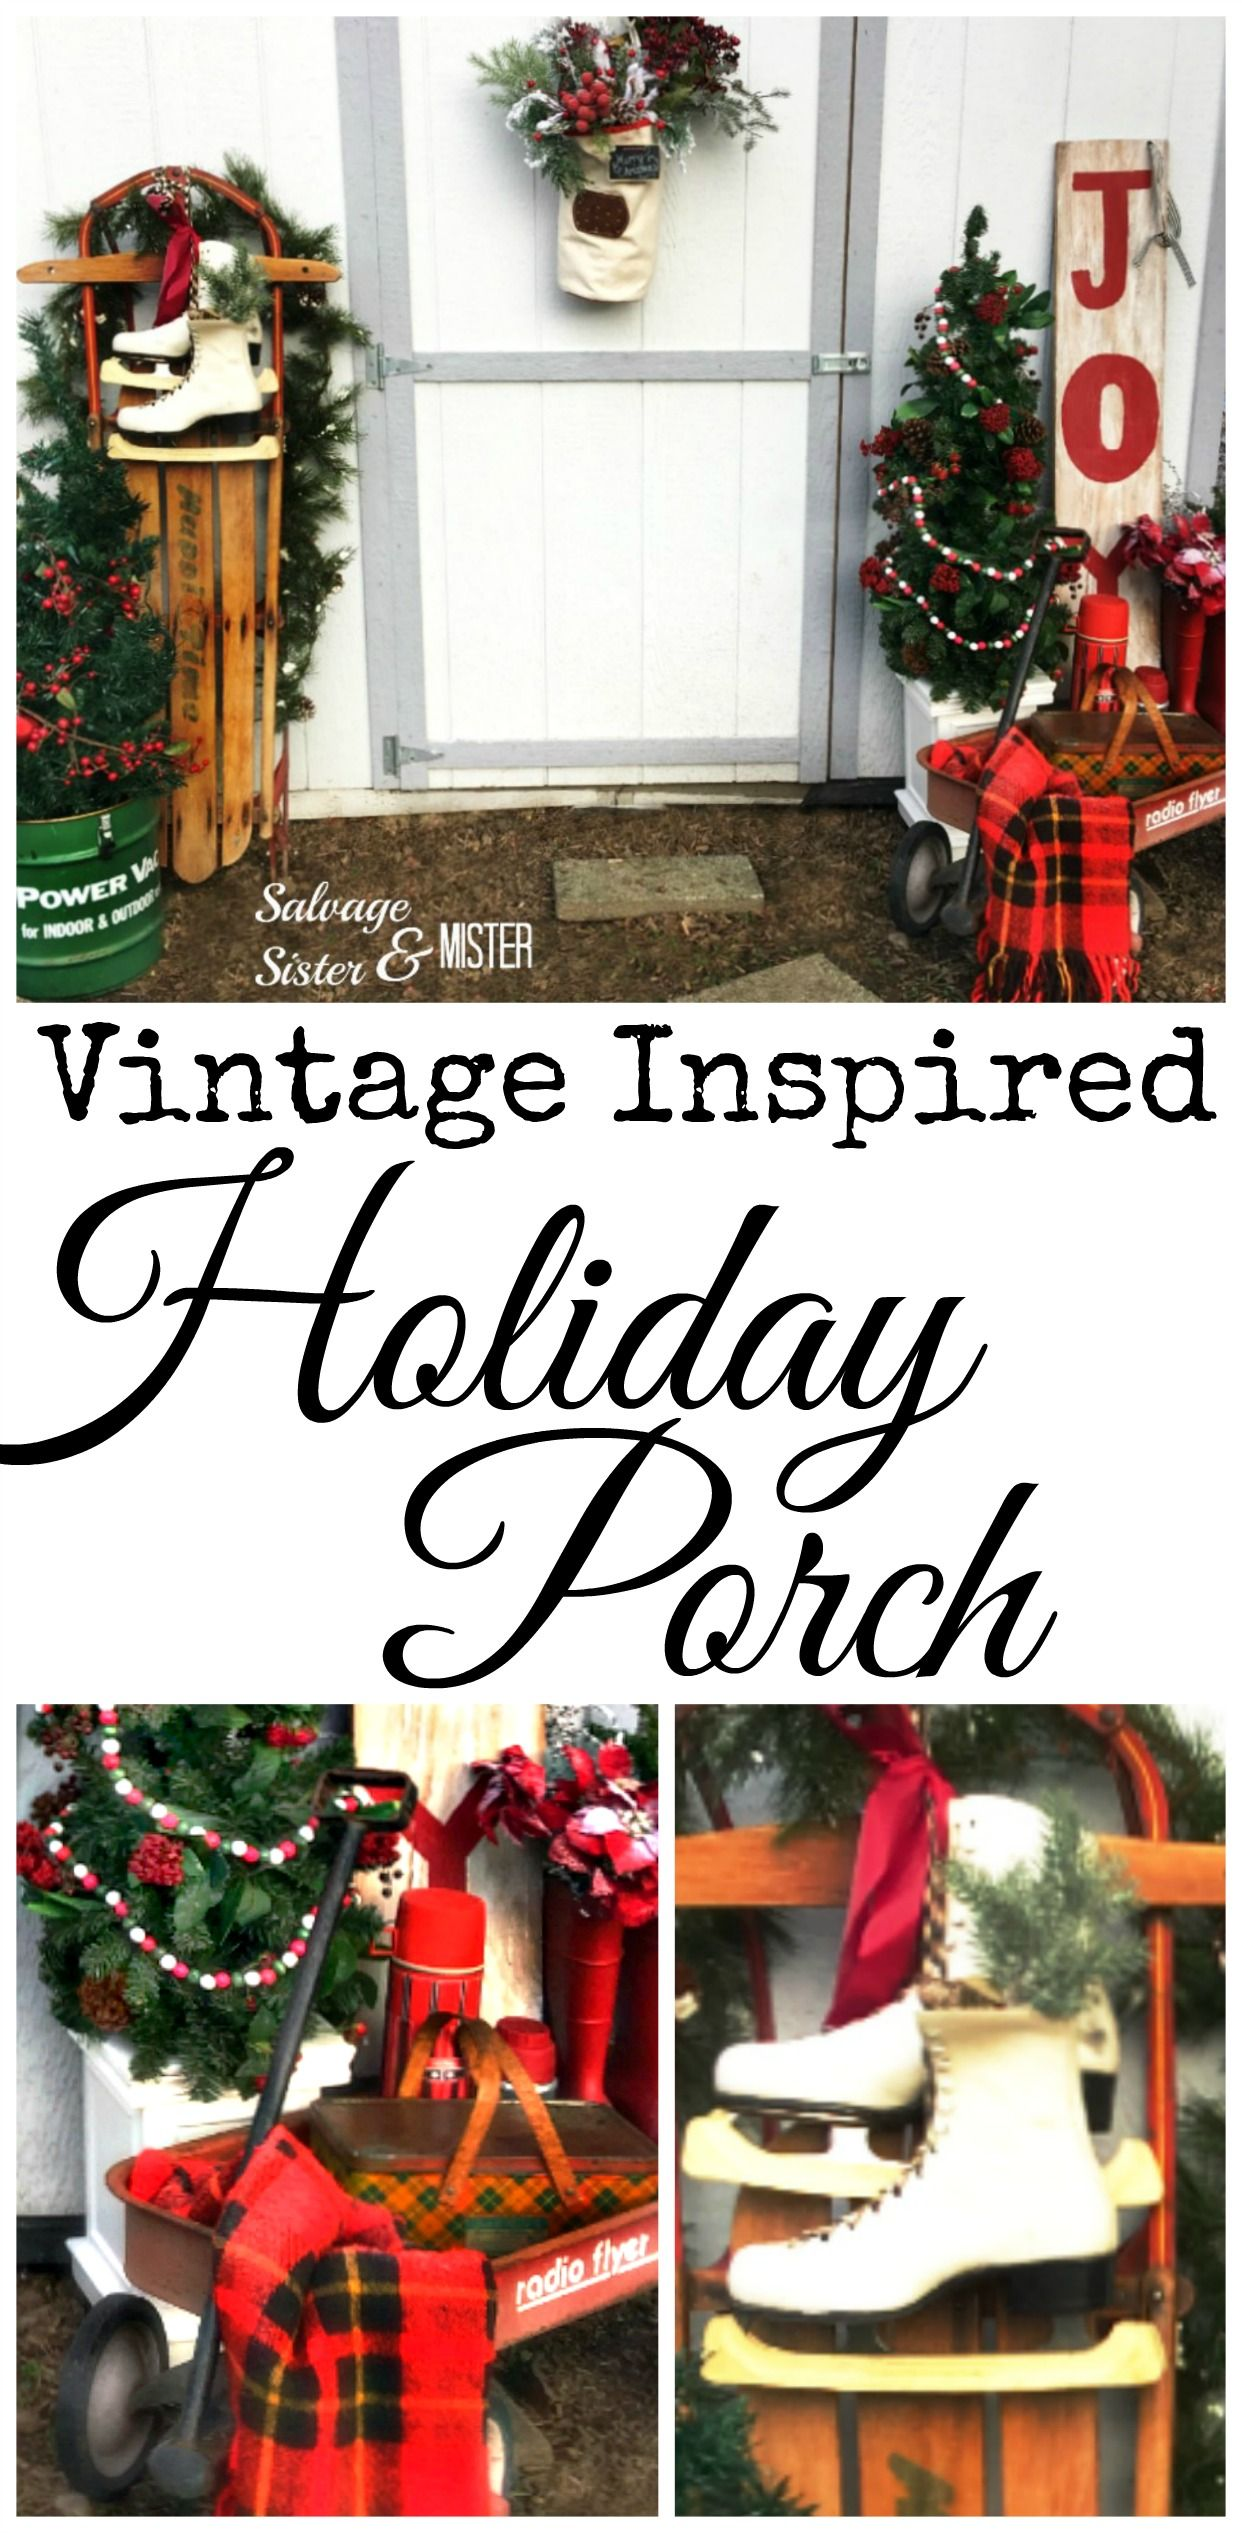 Vintage Inspired Holiday Porch | Porch, Curb appeal and Front porches